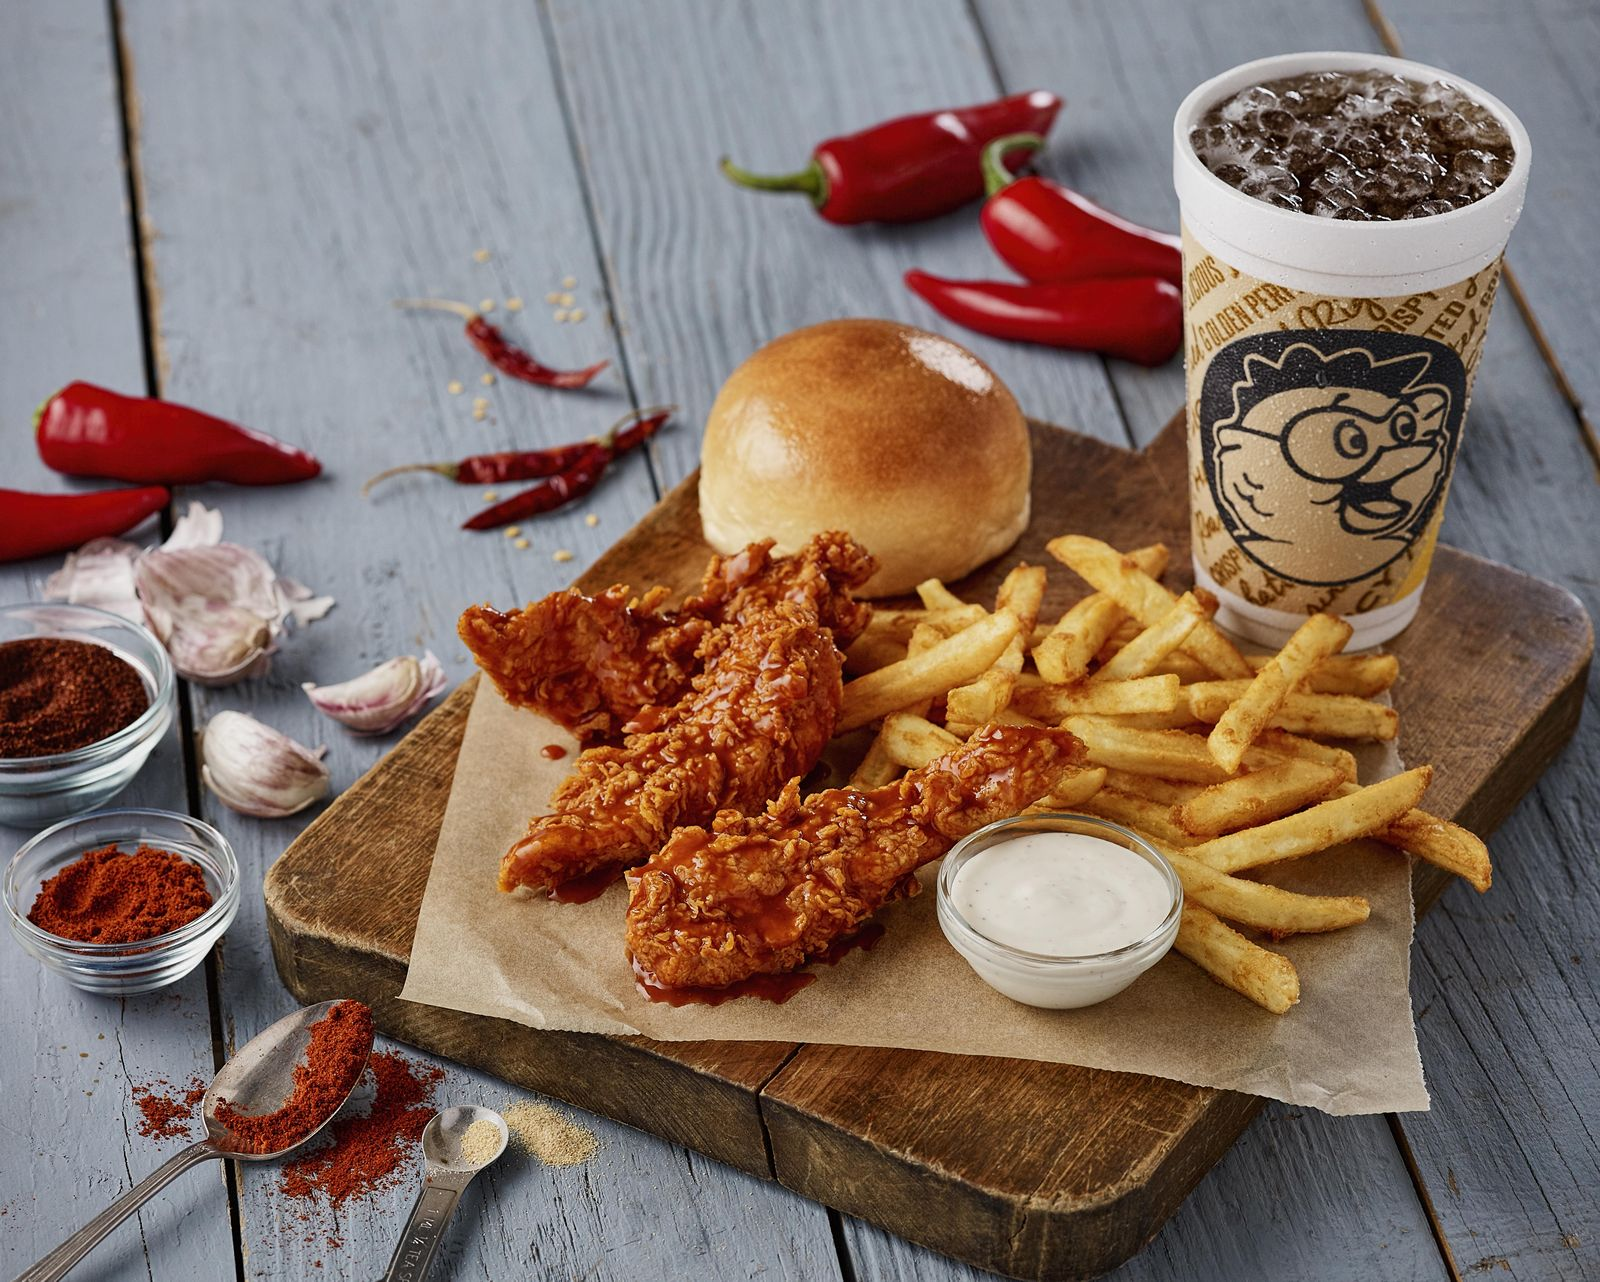 Golden Chick Brings the Heat with New Advertising Campaign and Chipotle Buffalo Tenders